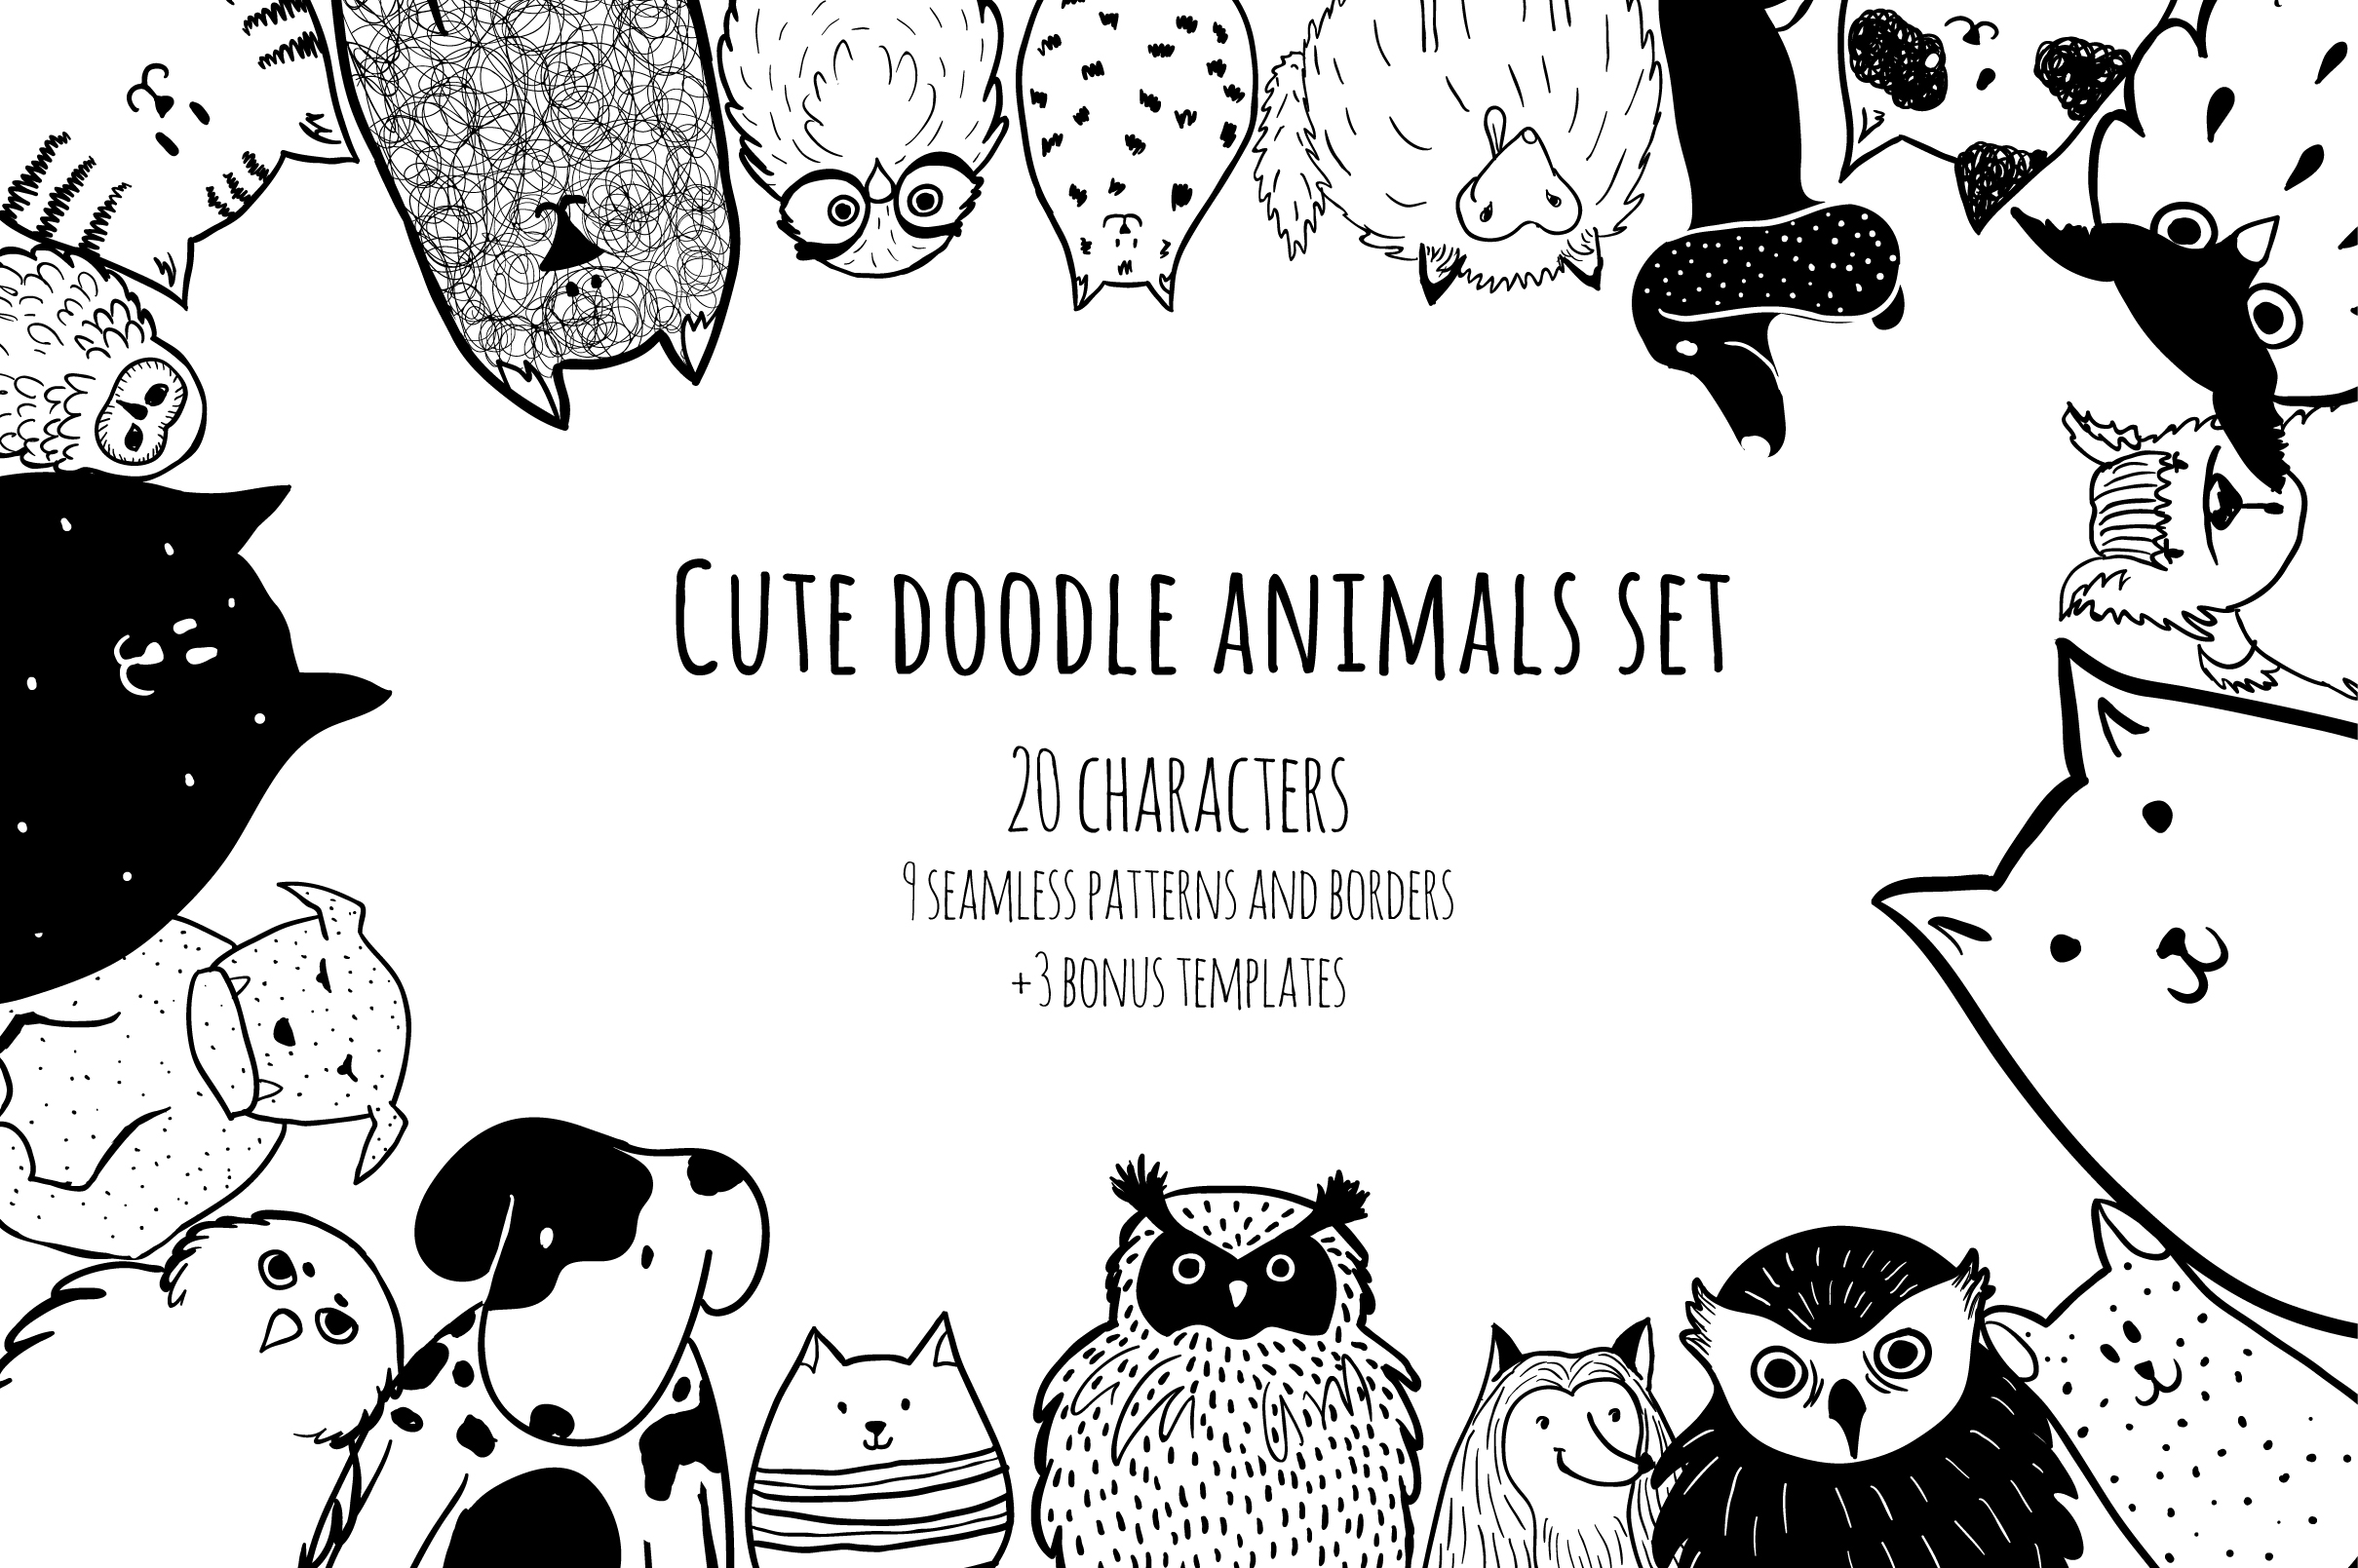 Cute doodle animals set example image 1